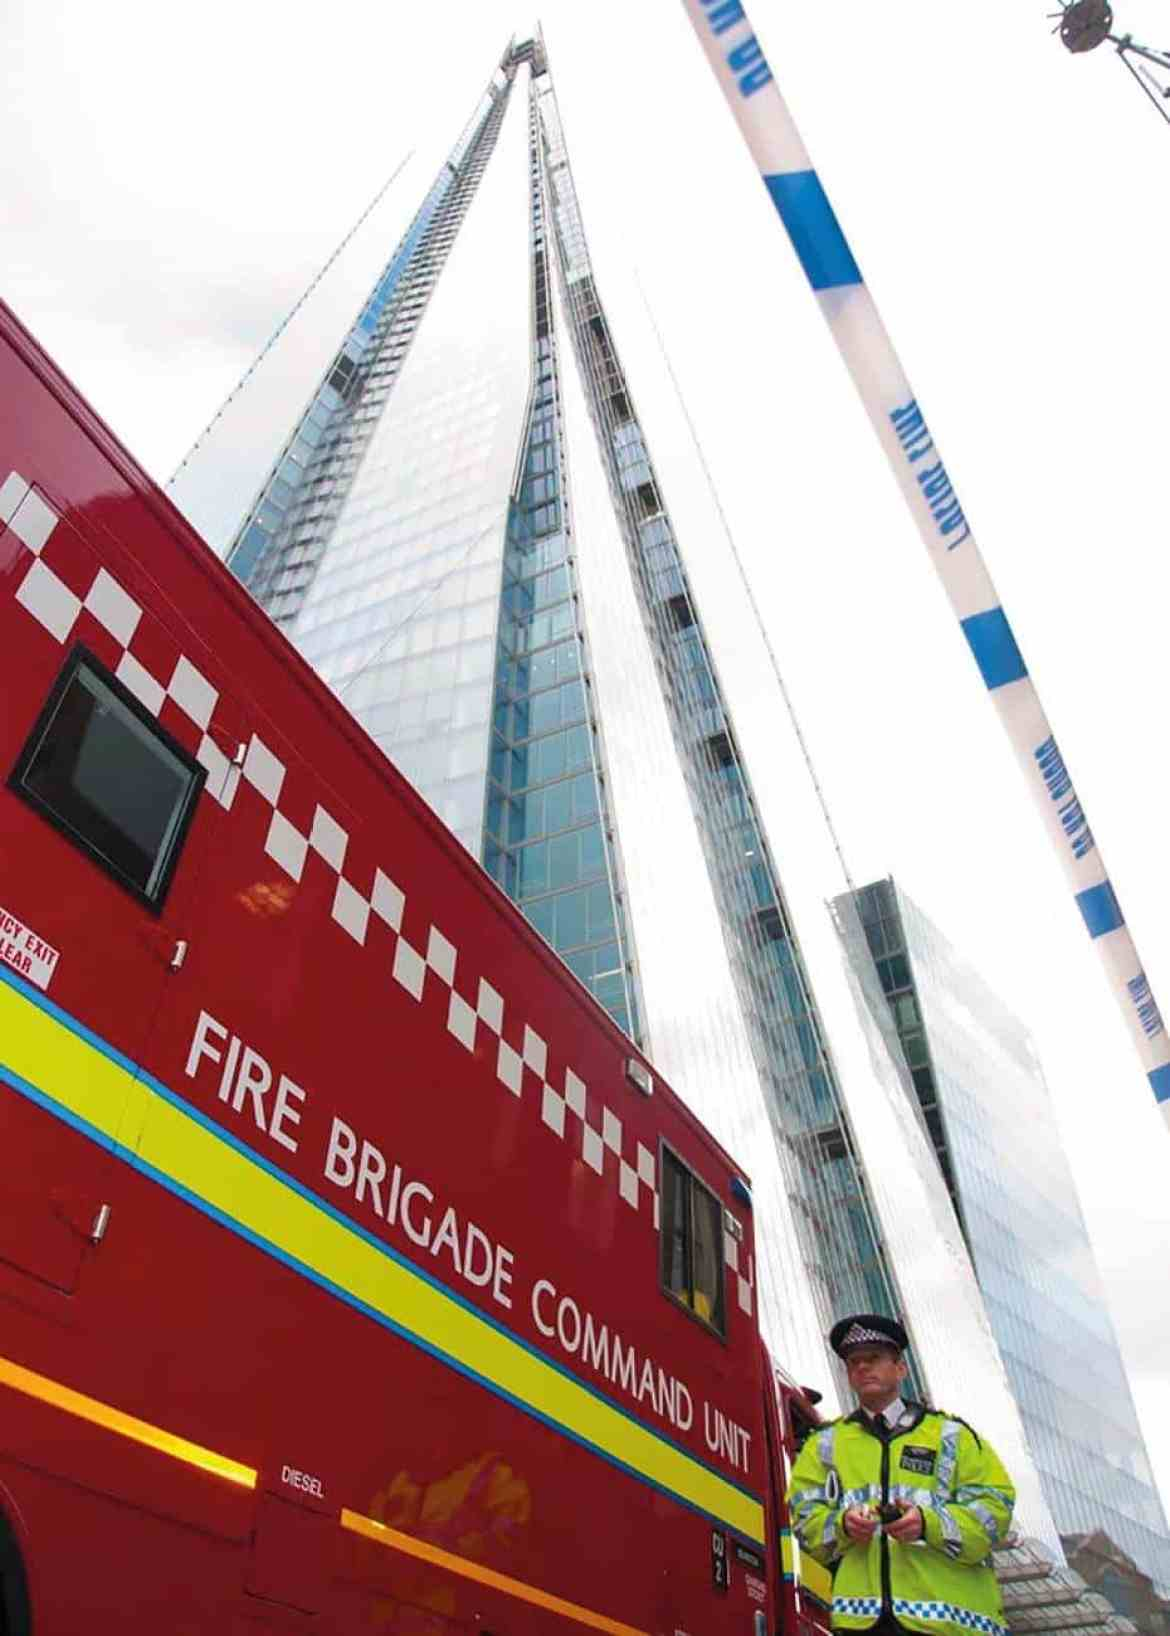 A major training exercise held at The Shard (95 floors and 309 metres high) before it opened to the public in February 2013.